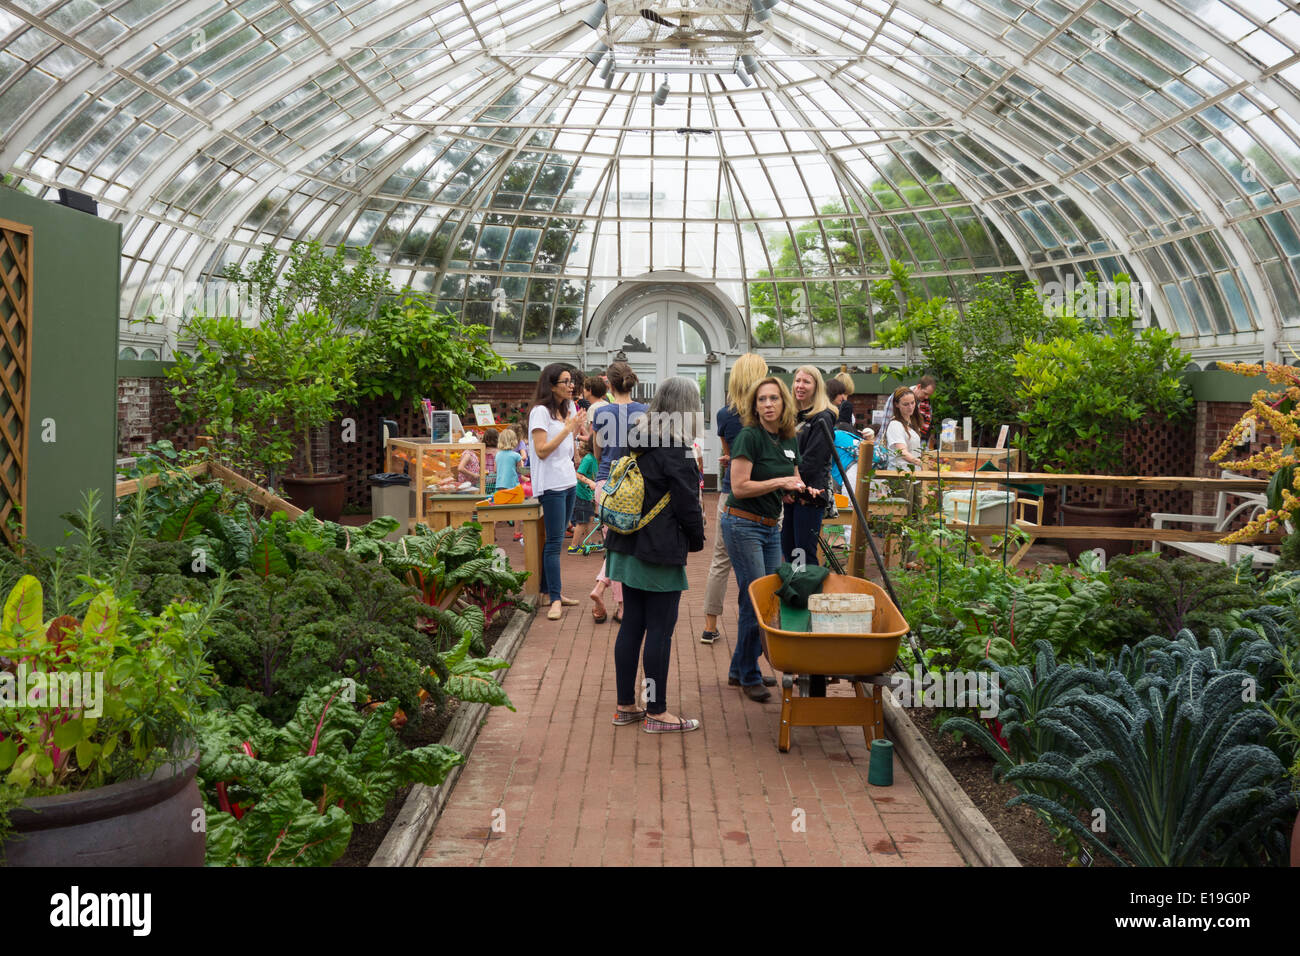 Phipps Conservatory And Botanical Garden In Pittsburgh Pa Stock Photo Royalty Free Image